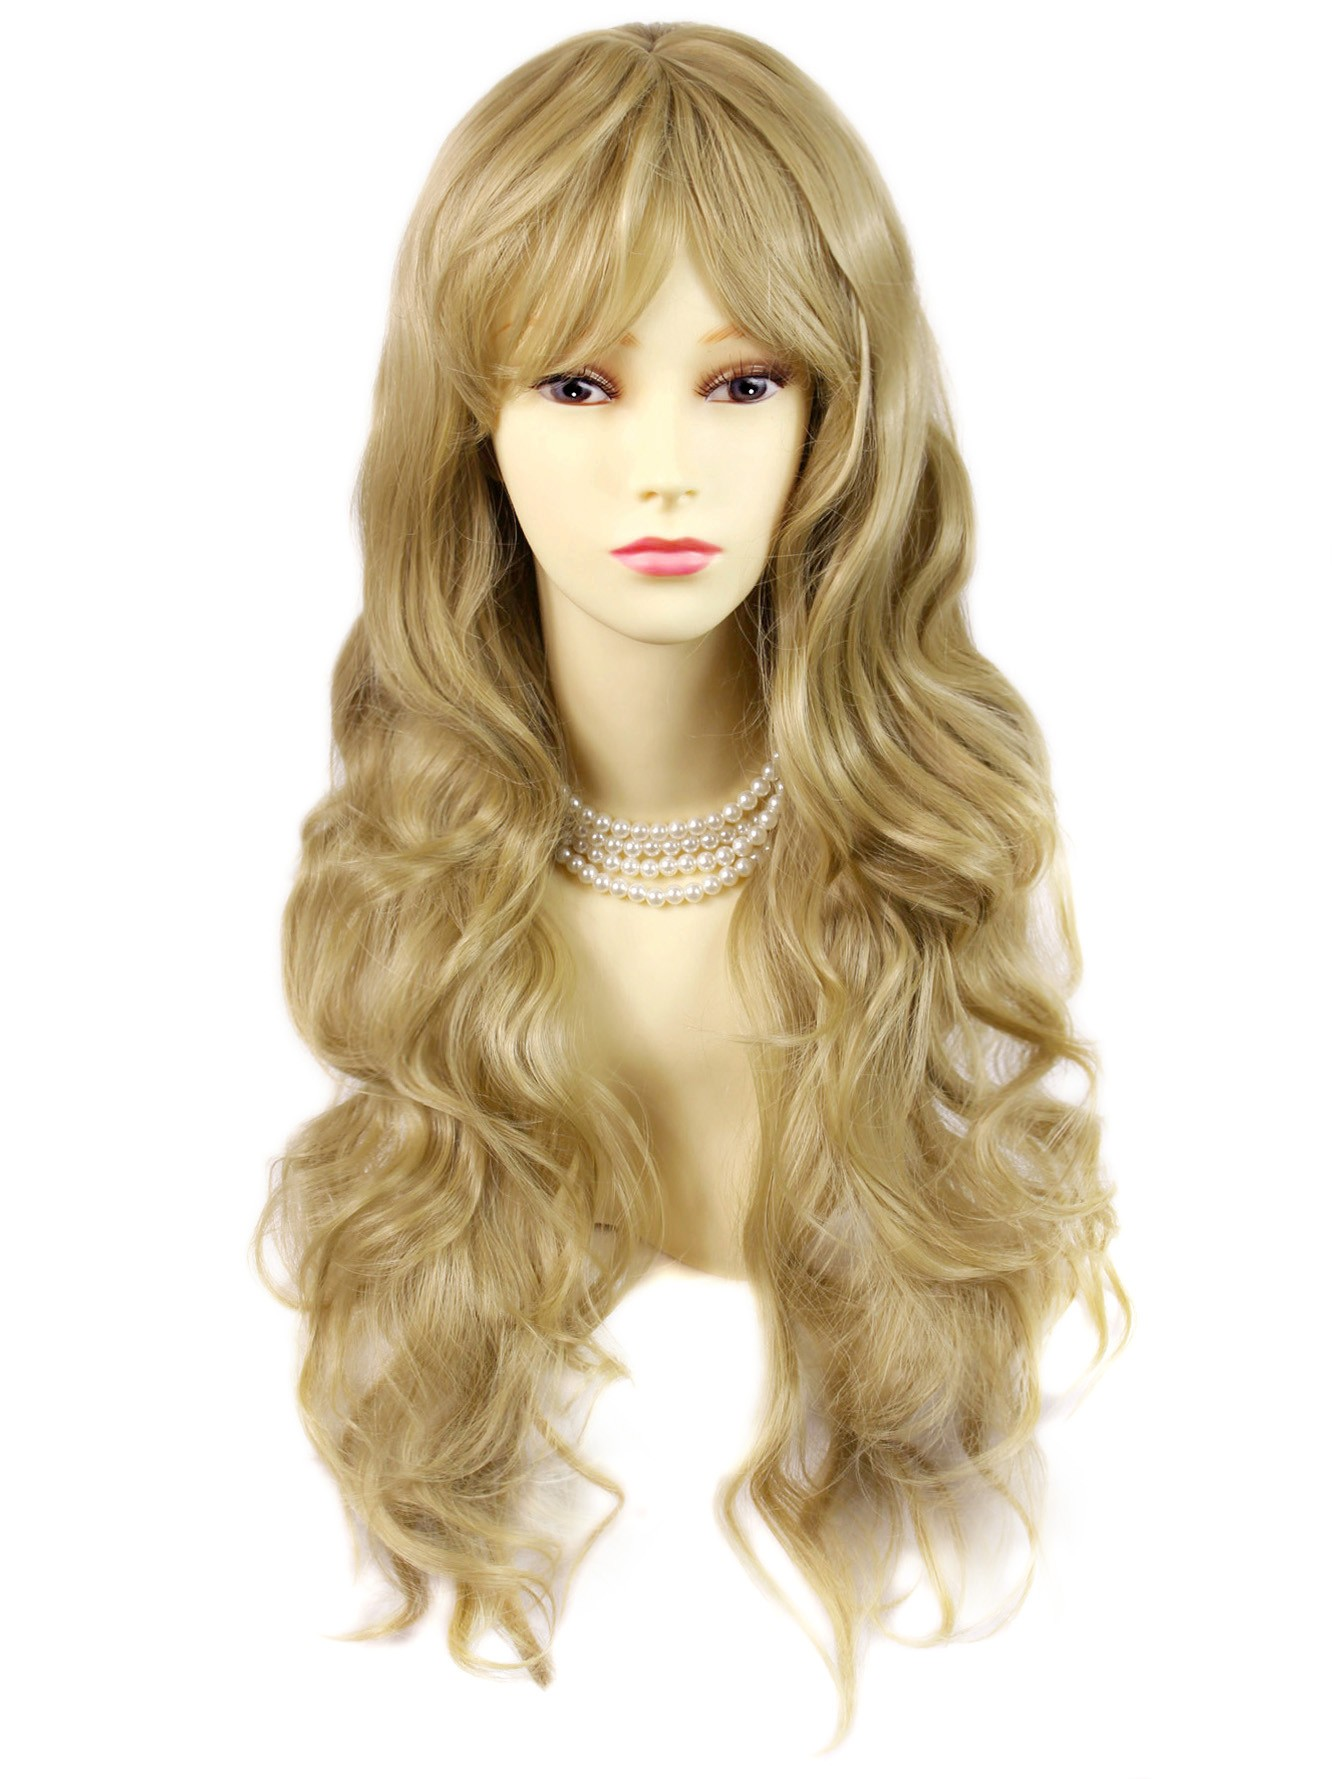 Wiwigs Sexy Beautiful Curly Golden Blonde Long Wavy